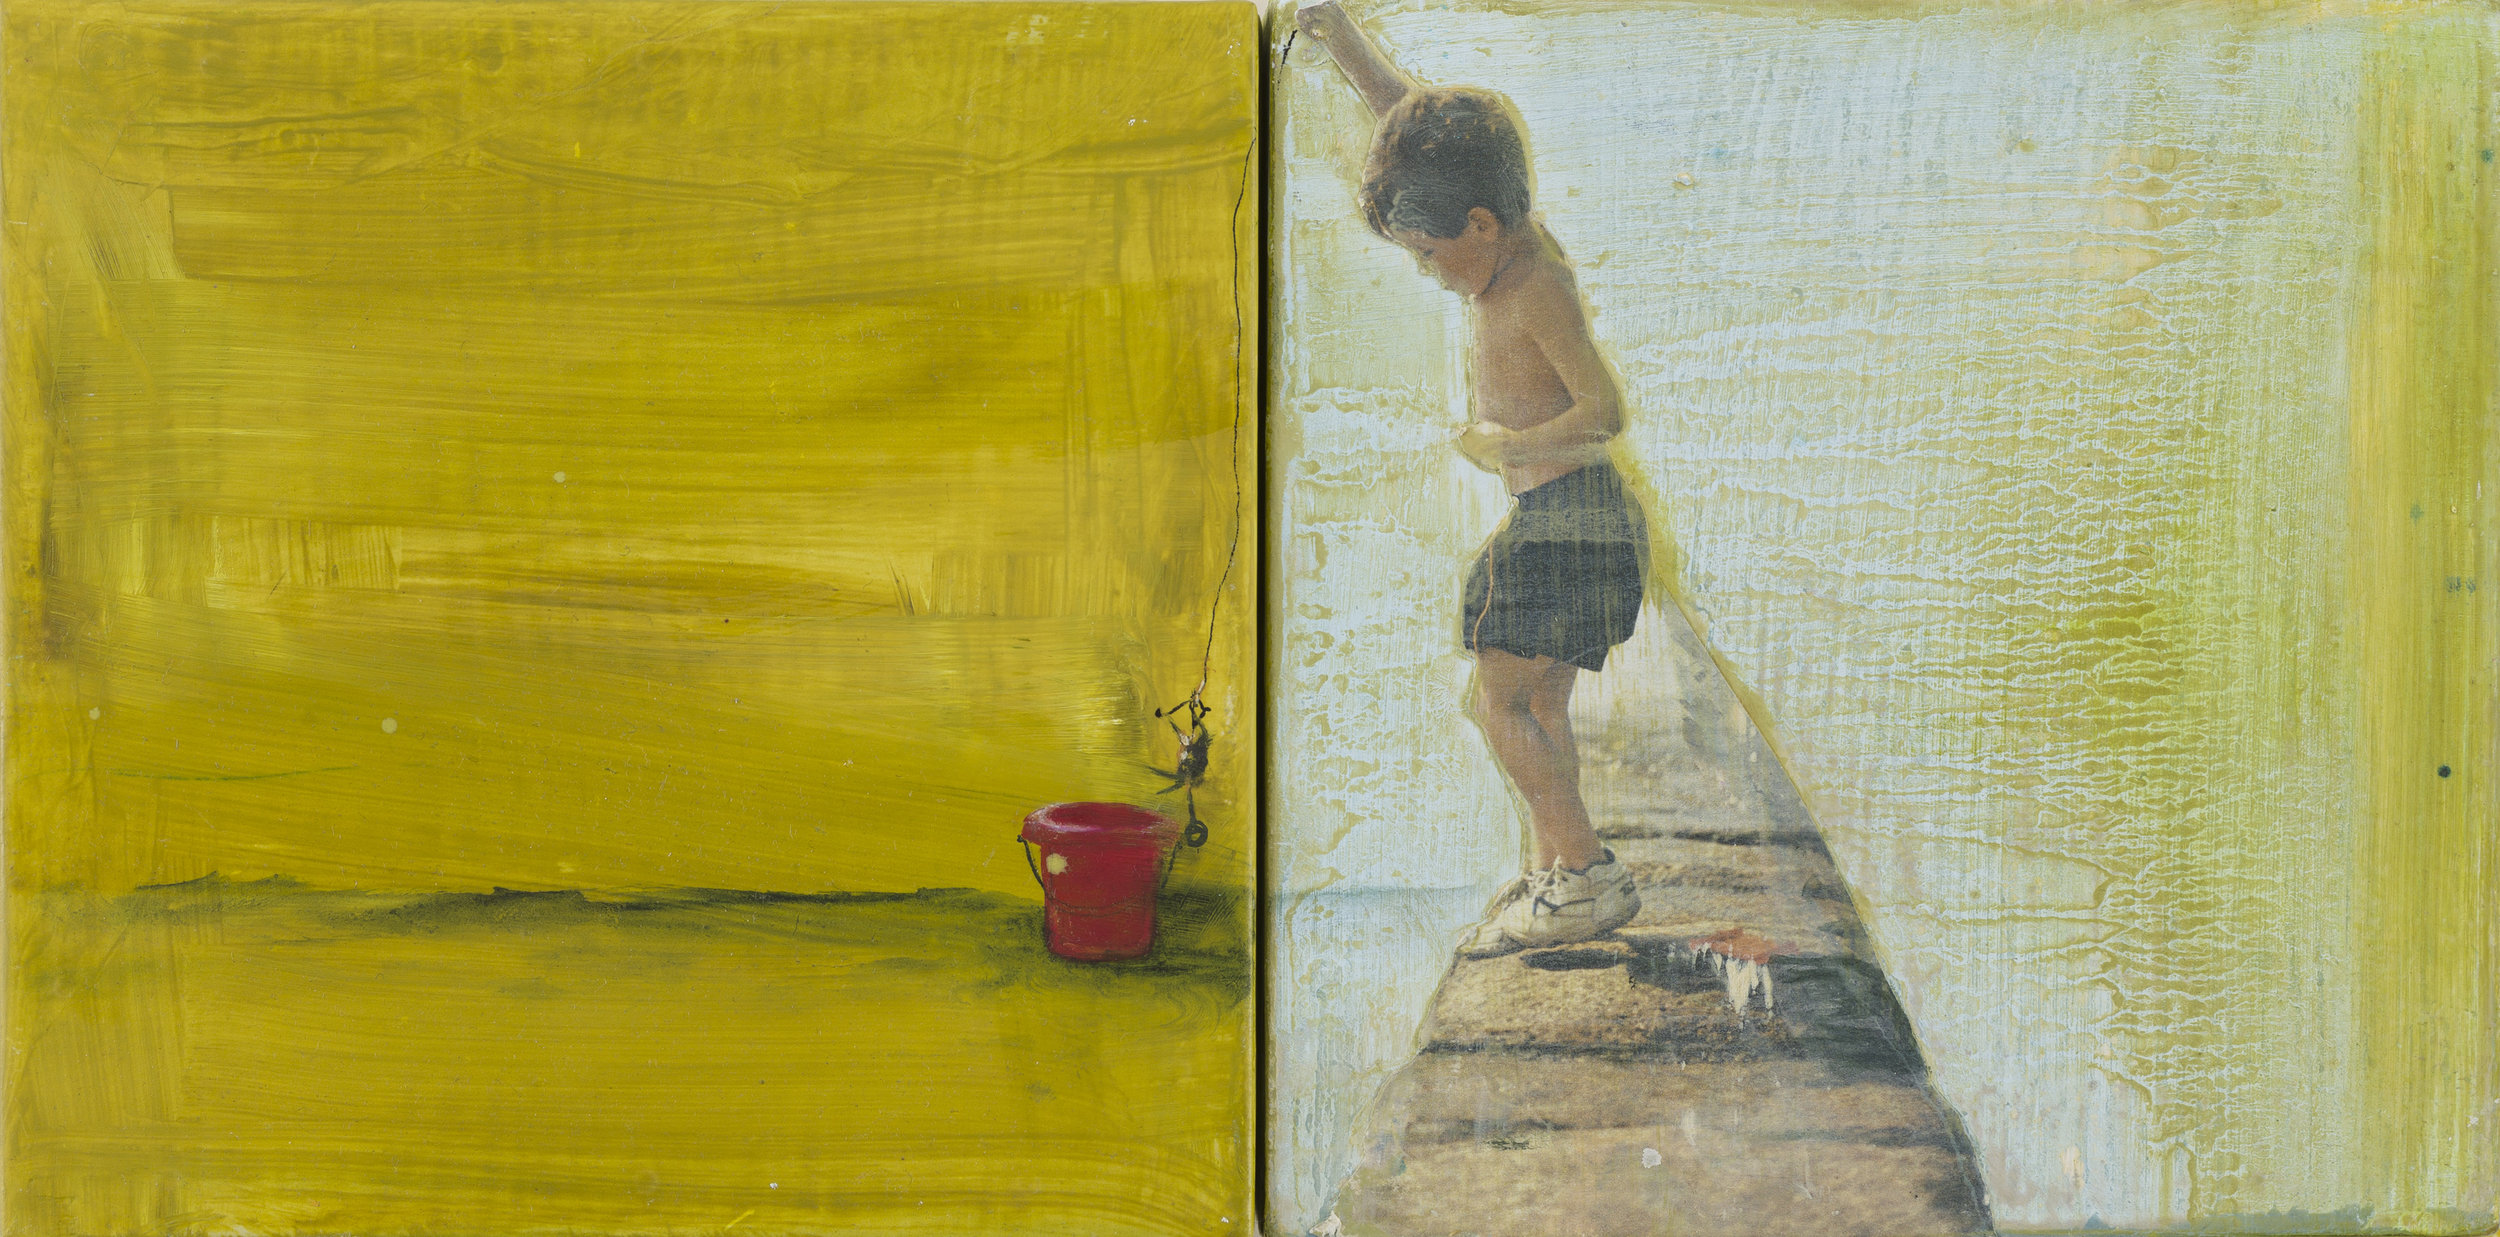 Best of days . 15 x 30cms. Dyptich. Oil and mixed media on board.